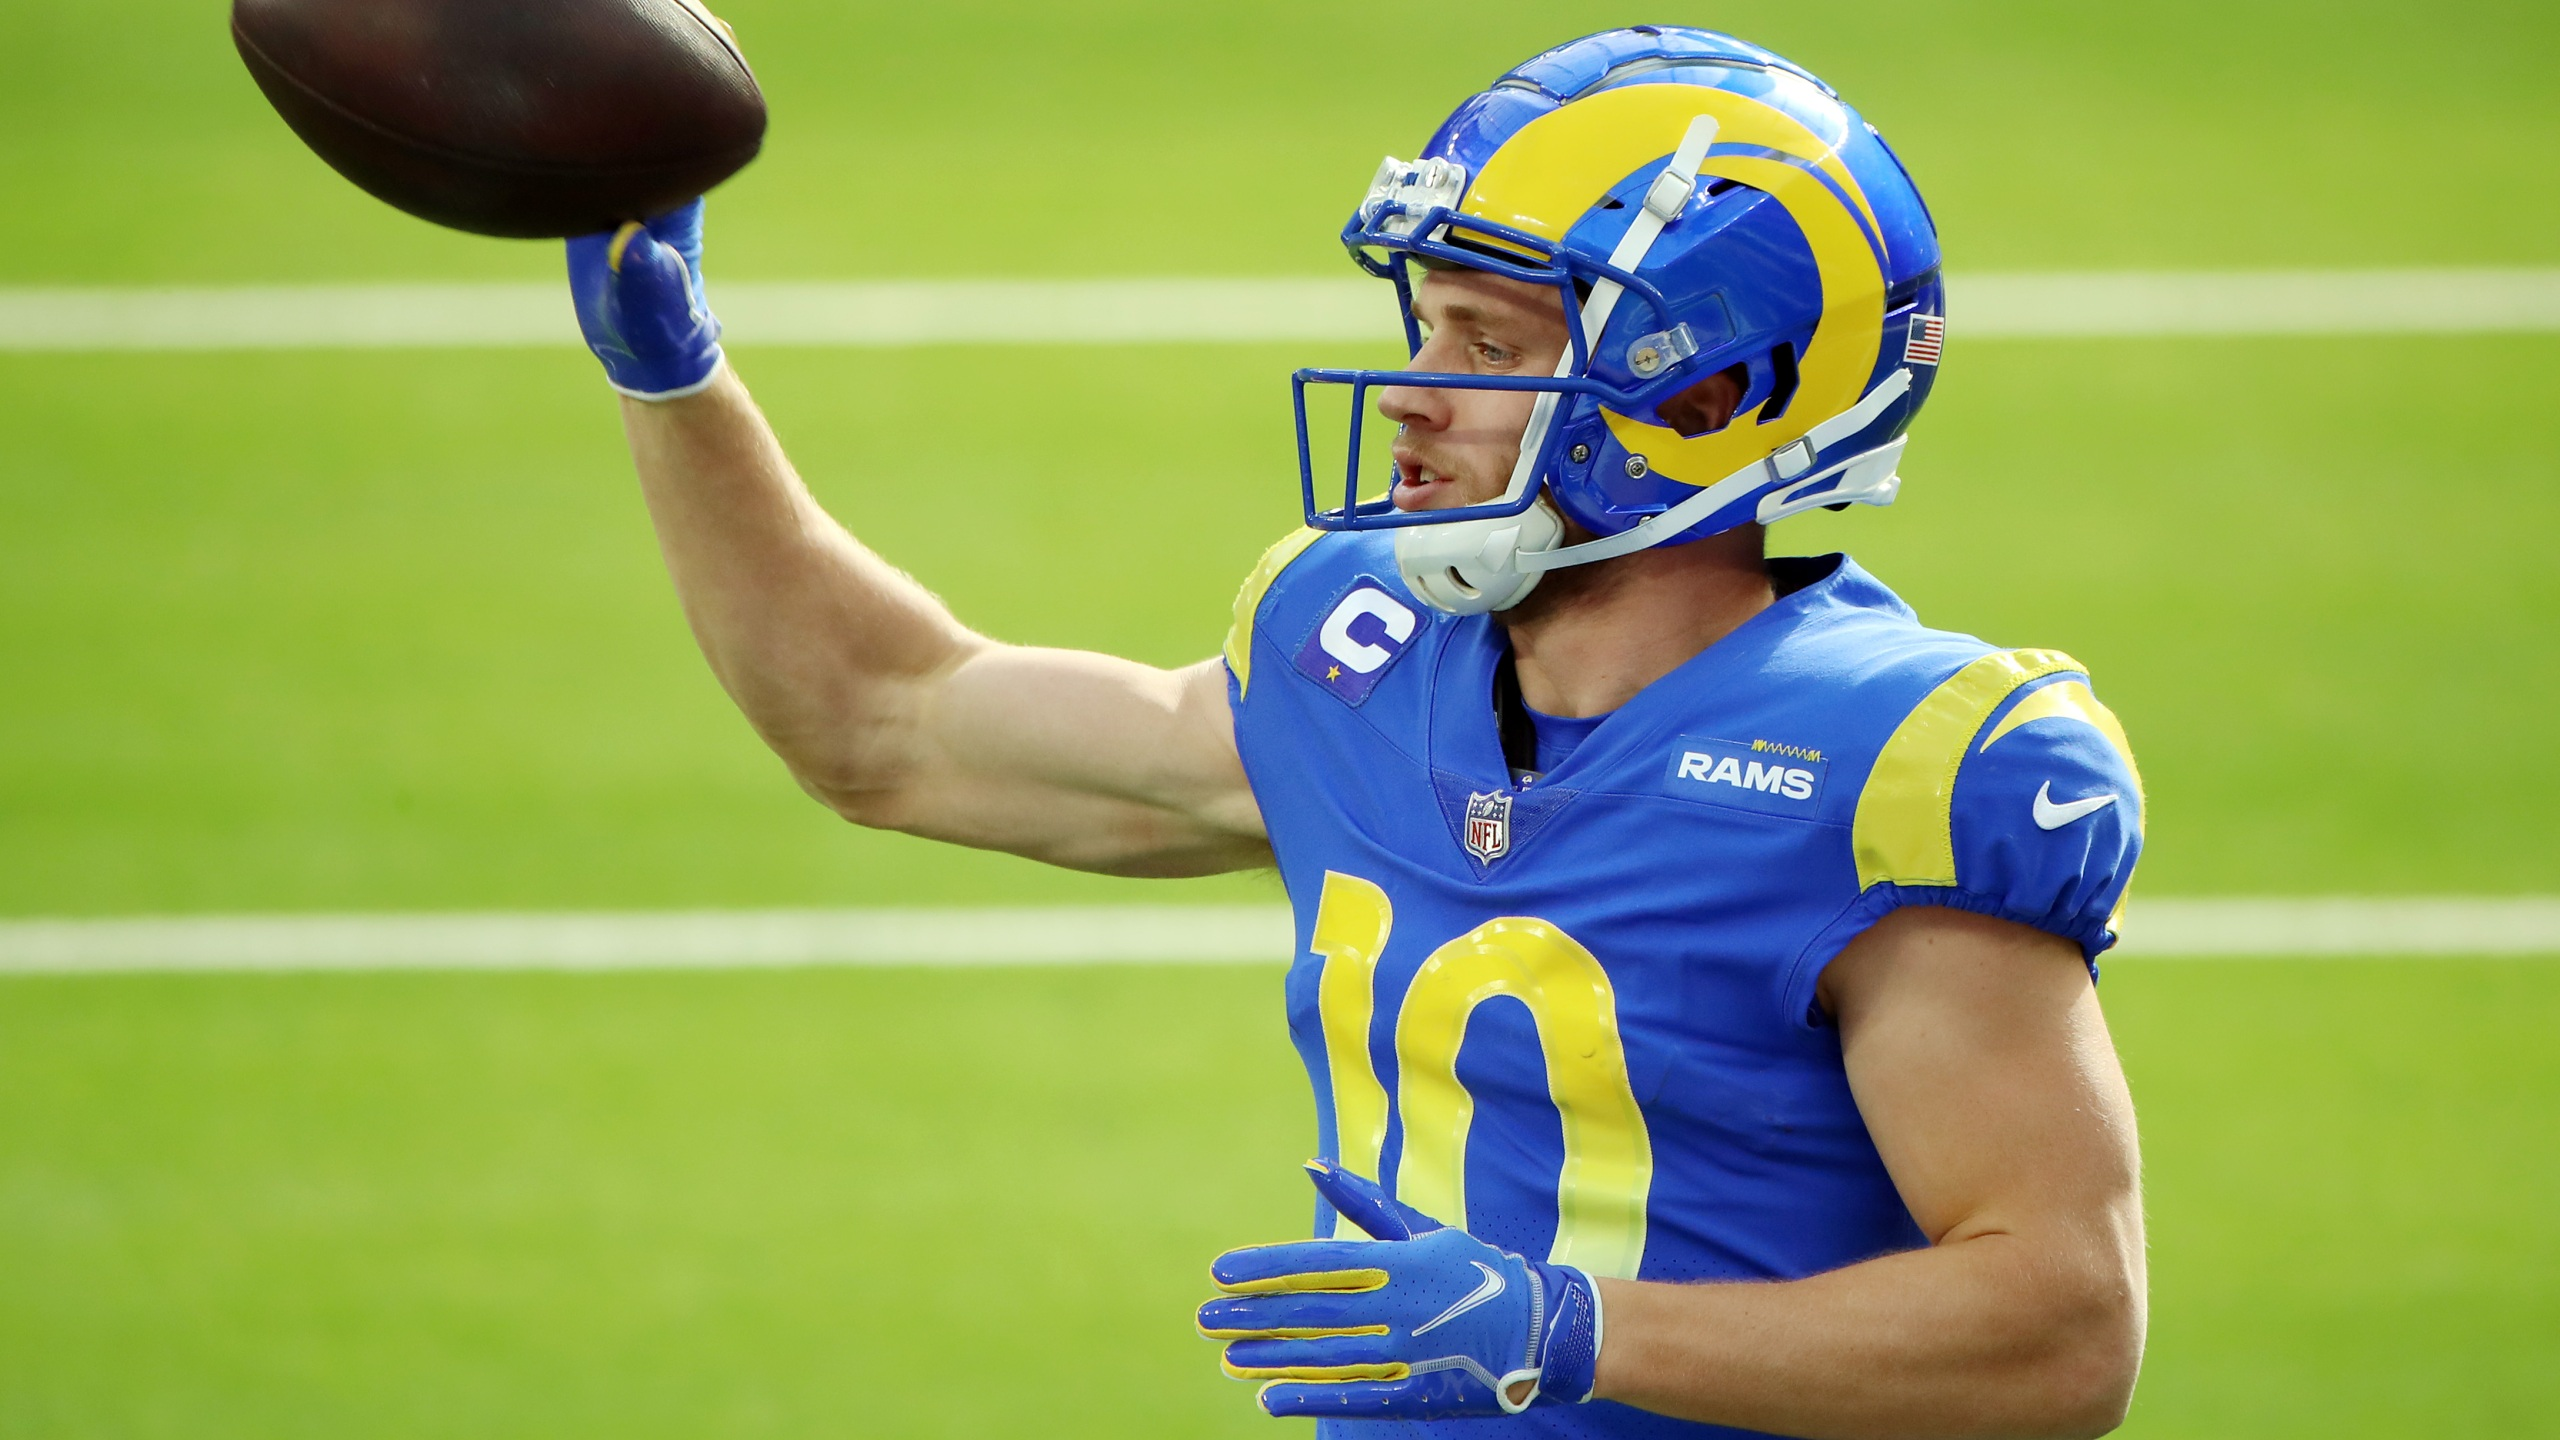 Cooper Kupp #10 of the Los Angeles Rams warms up before the game against the San Francisco 49ers at SoFi Stadium on November 29, 2020 in Inglewood, California. (Katelyn Mulcahy/Getty Images)